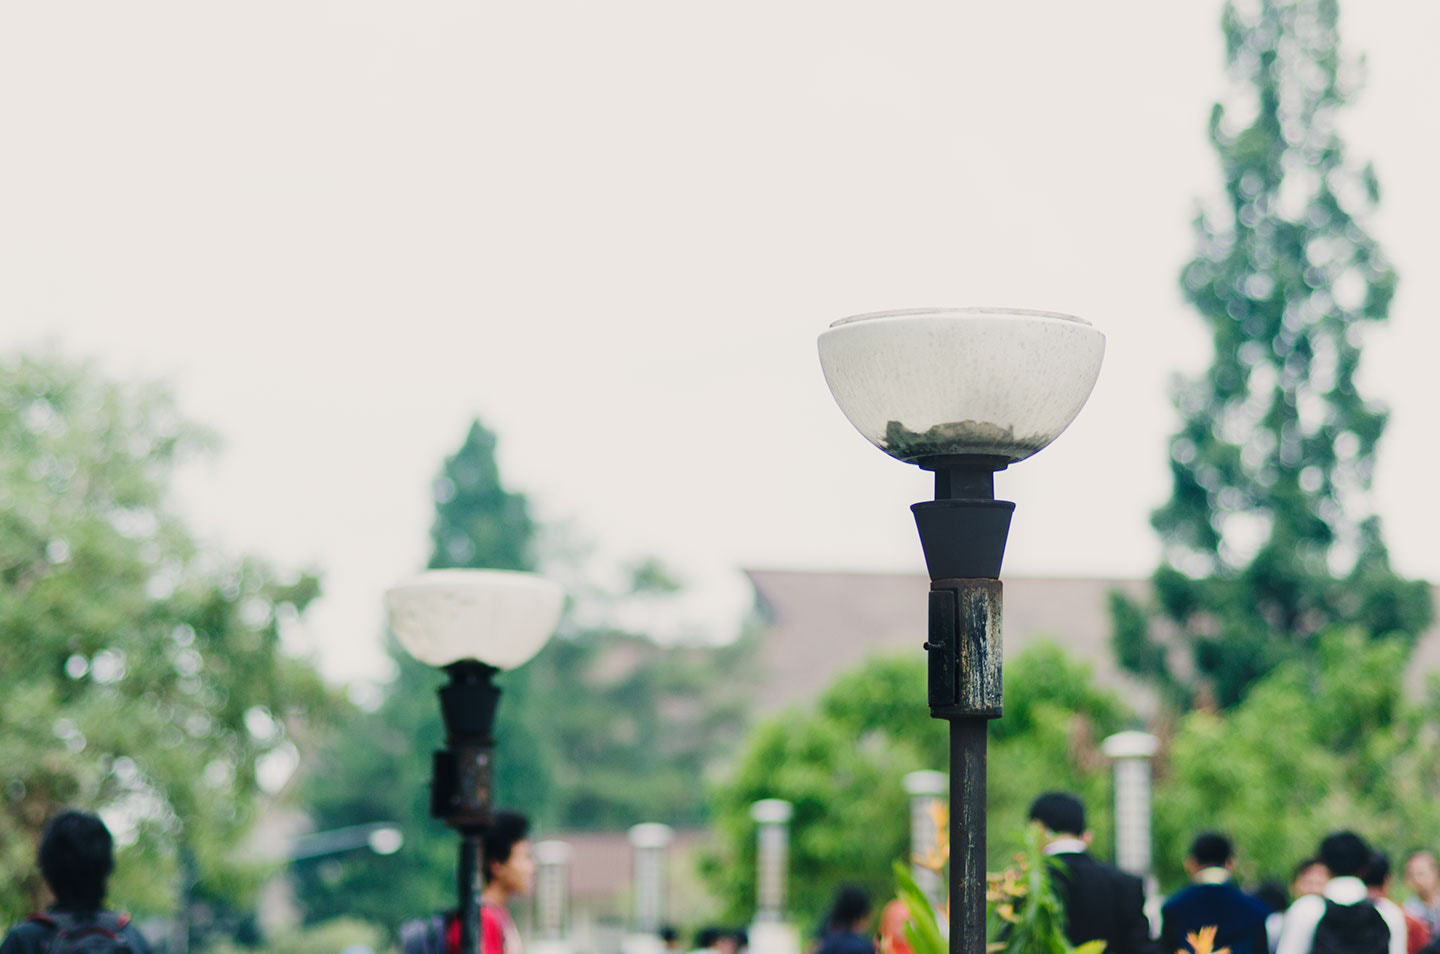 Photograph Lamps by Bady qb on 500px